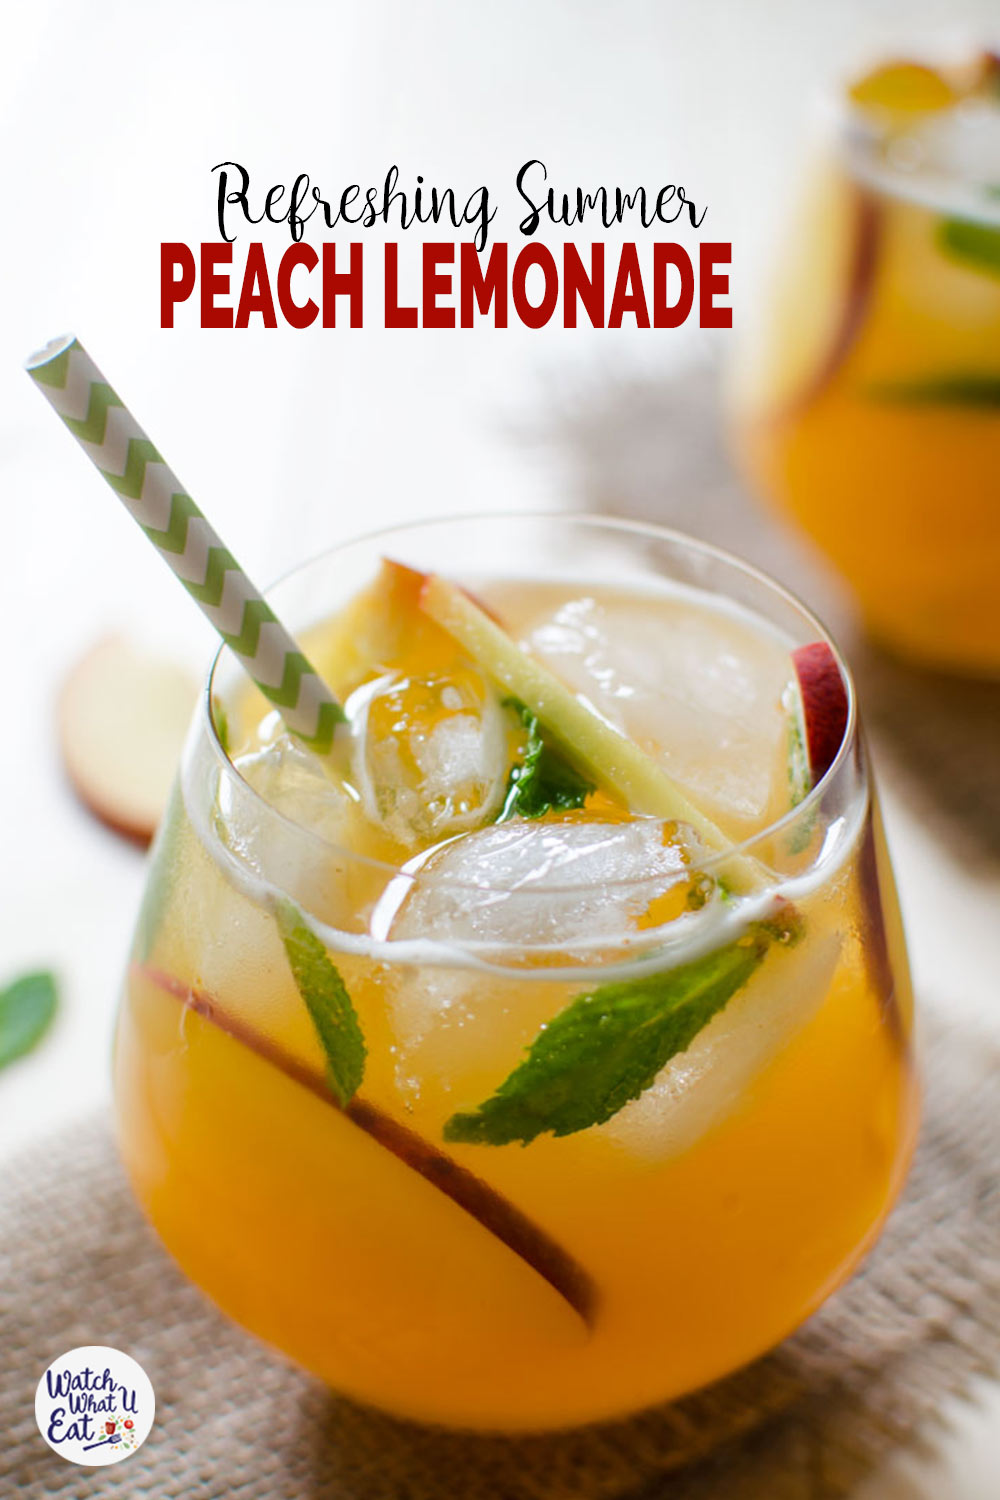 Try this refreshing easy peach lemonade recipe to enjoy utilize fresh peaches of the season. Healthy naturally sweetened & non-alcoholic summer drink. | #watchwhatueat #lemonade #peaches #nonalcoholic #healthydrink